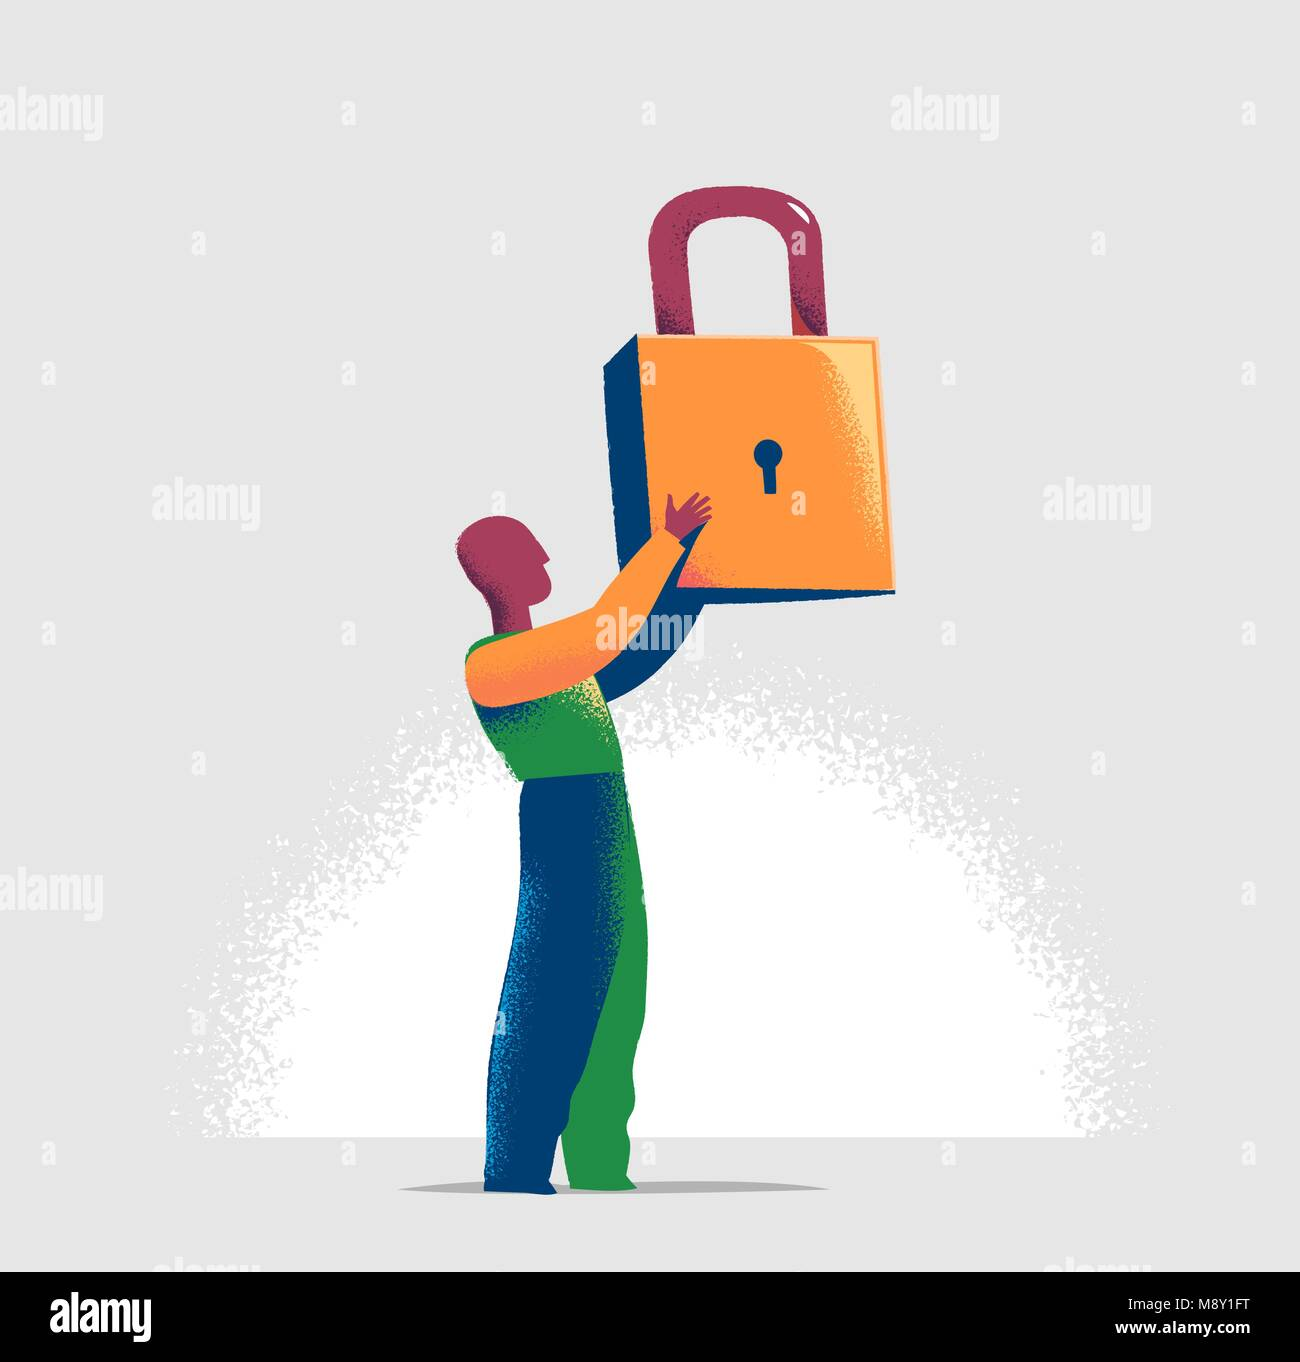 Torso of a manager is locking one virtual lock in a lineup of open padlocks. Business metaphor and technology concept - Stock Vector